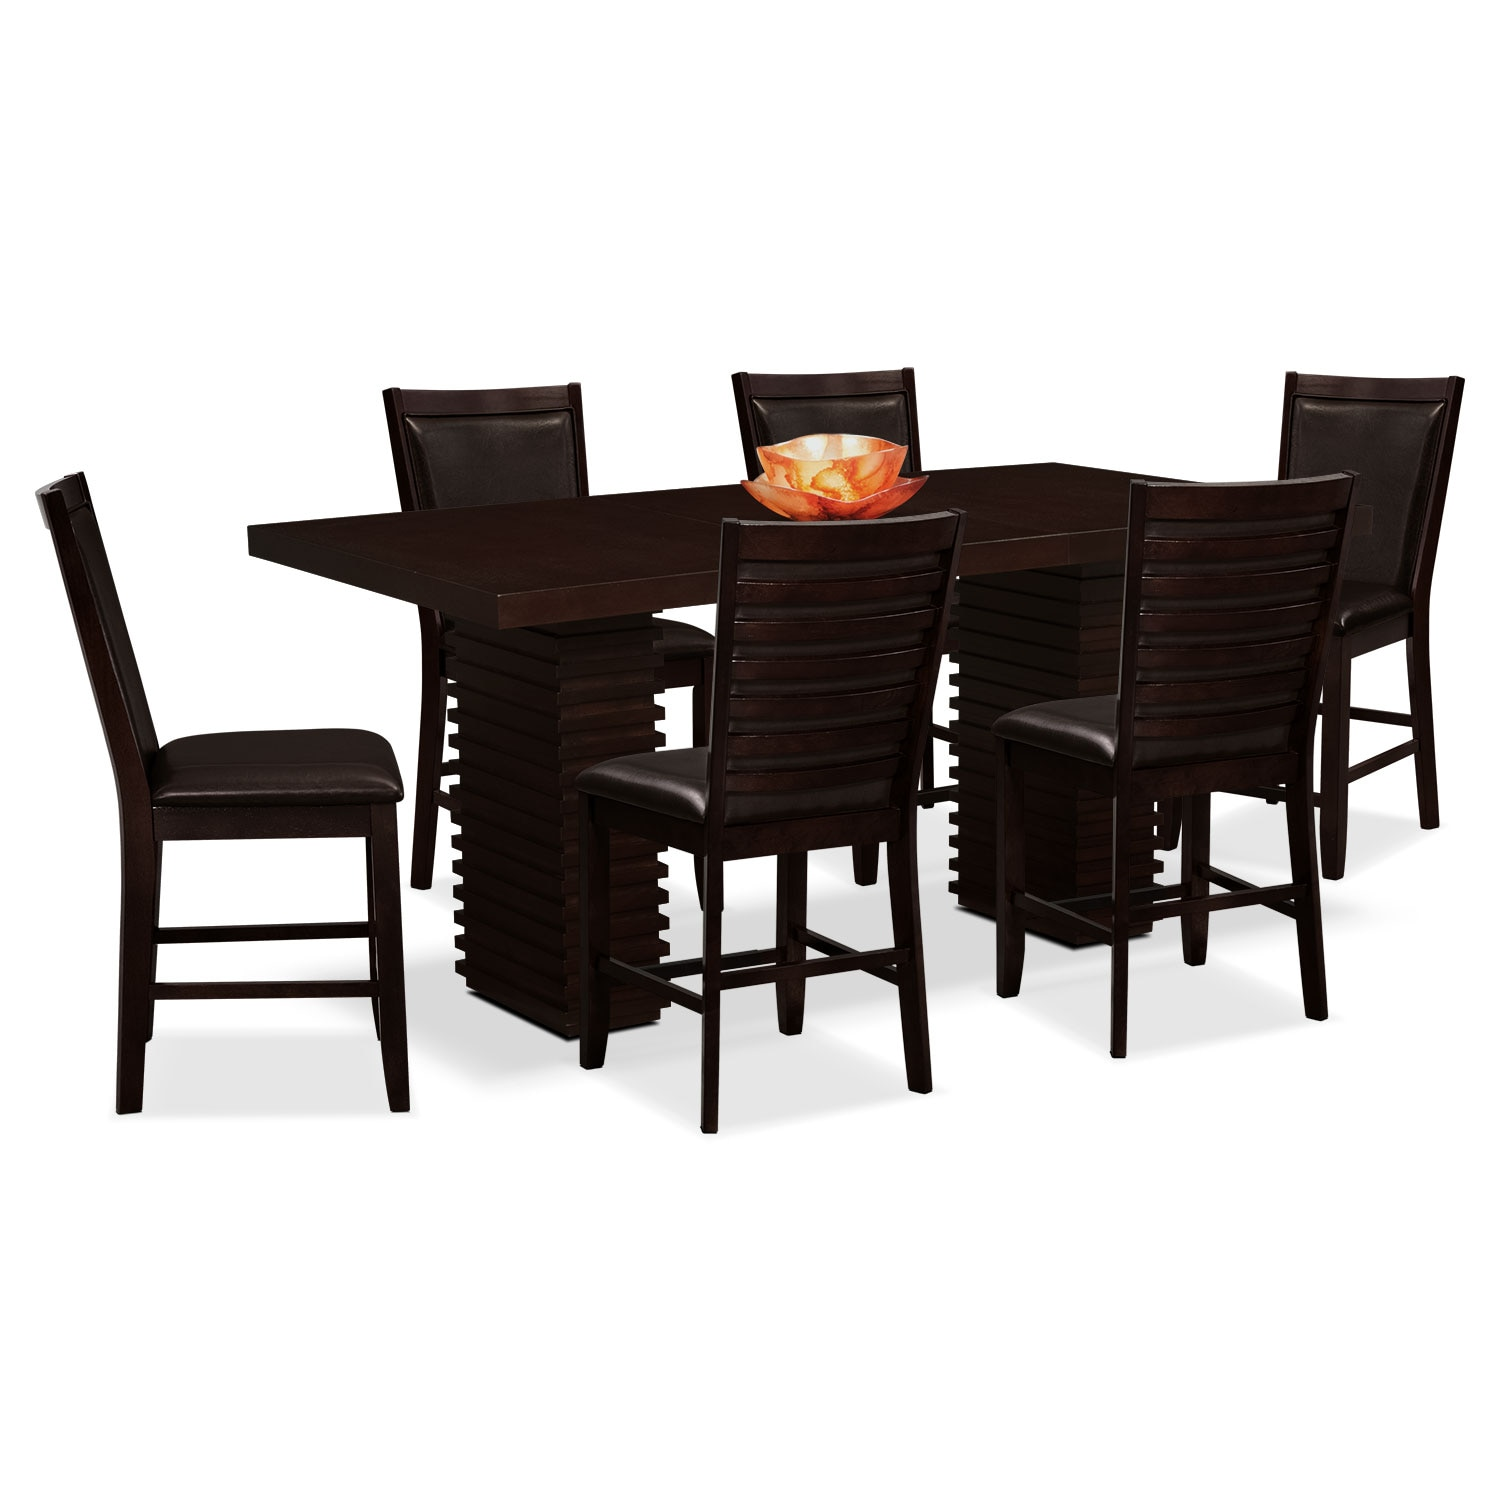 Dining Room Furniture - Paragon 7 Pc. Counter-Height Dinette - Brown